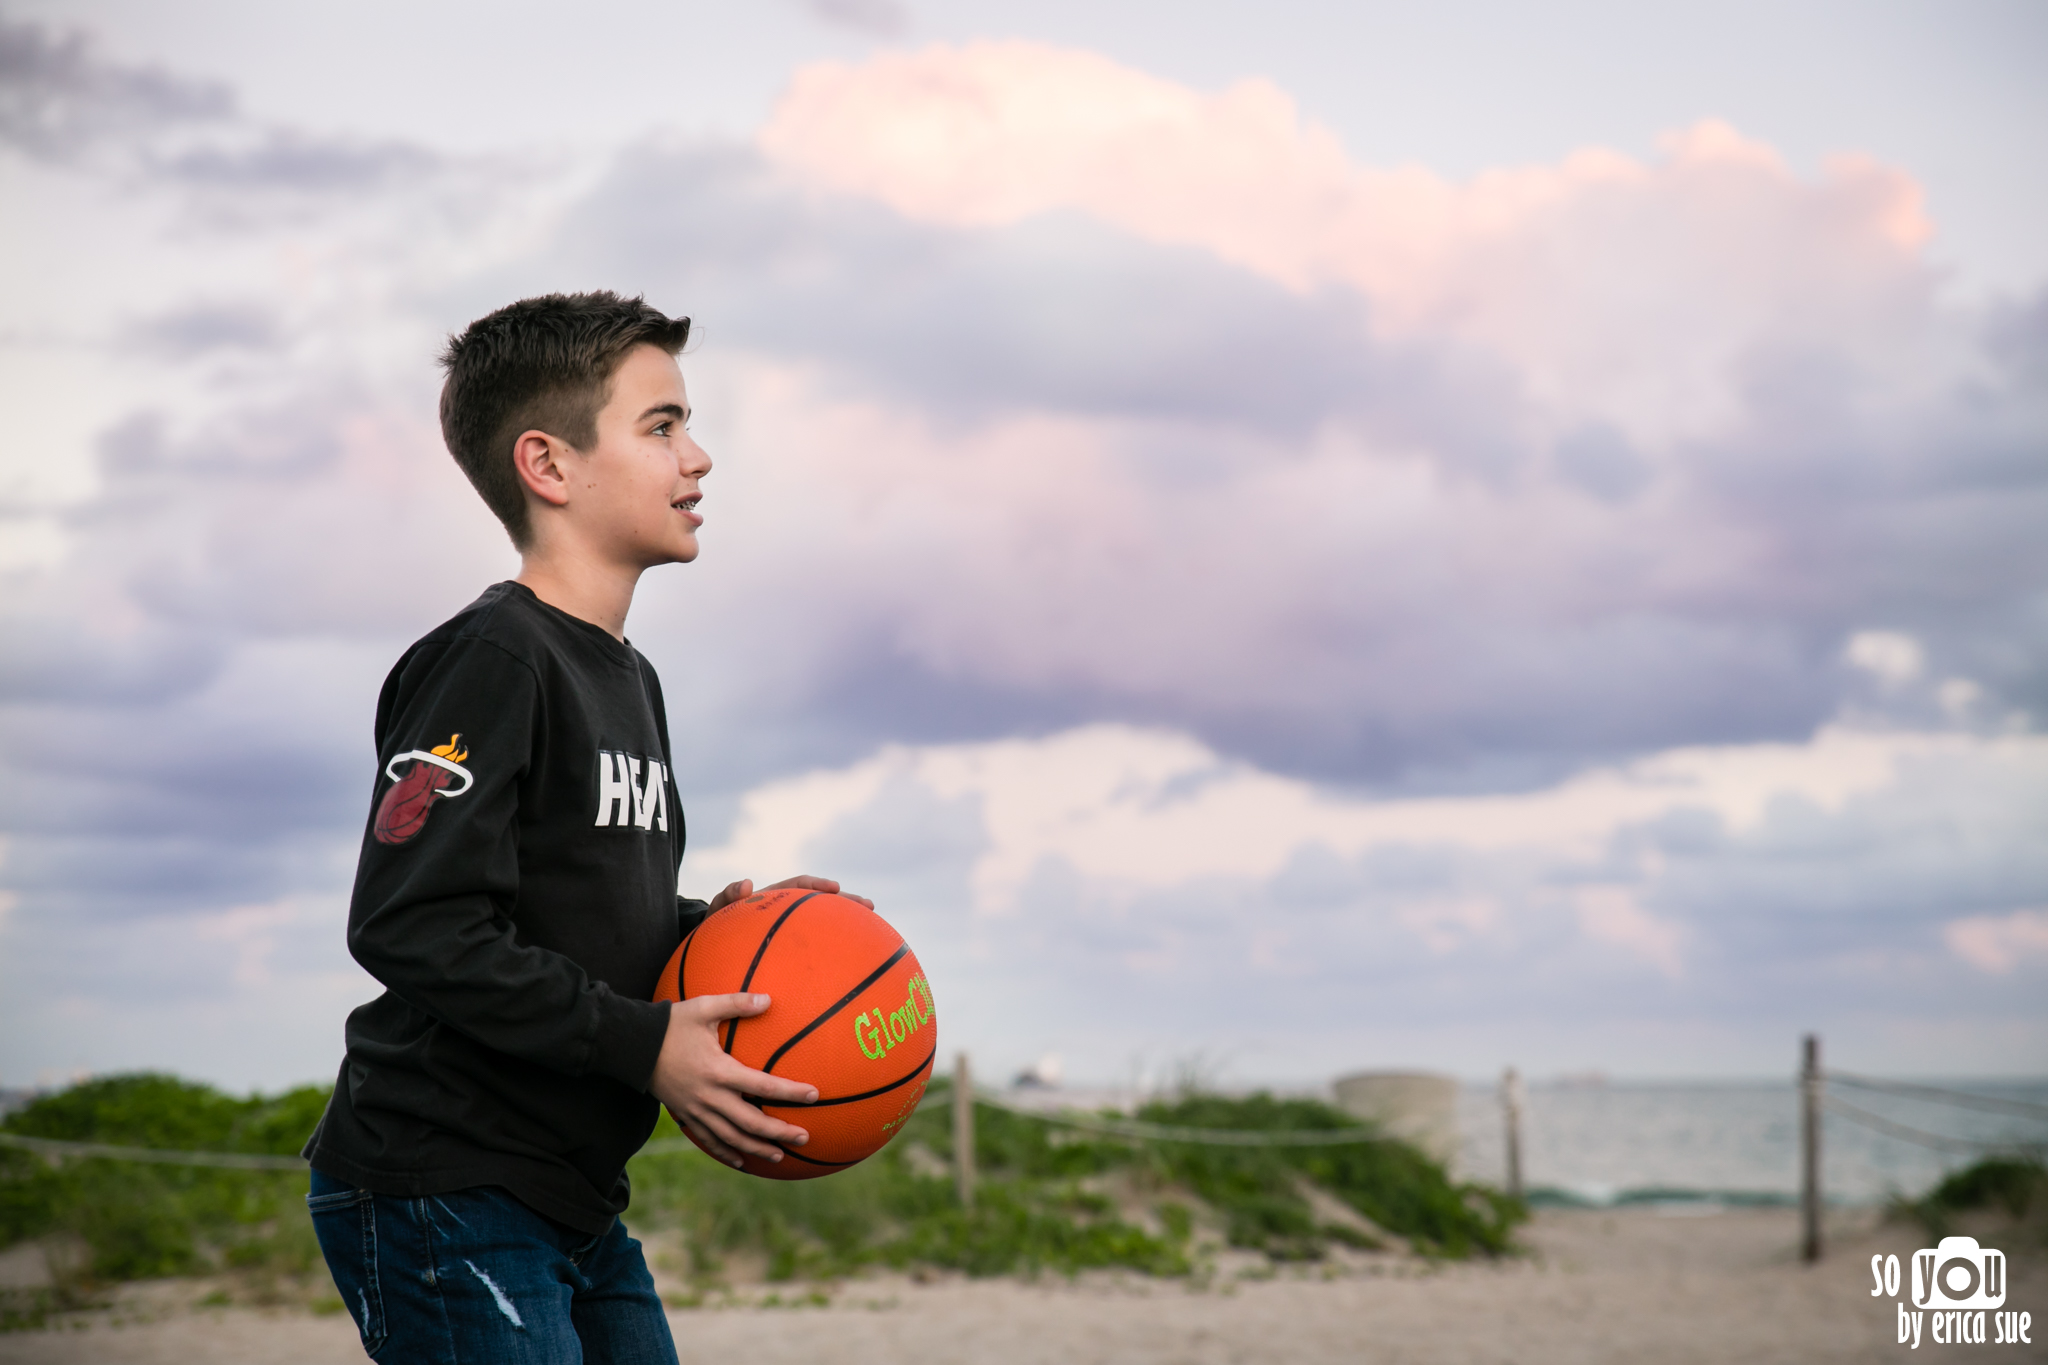 bar-mitzvay-pre-shoot-family-photography-so-you-by-erica-sue-ft-lauderdale-fl-florida-beach-9259.jpg